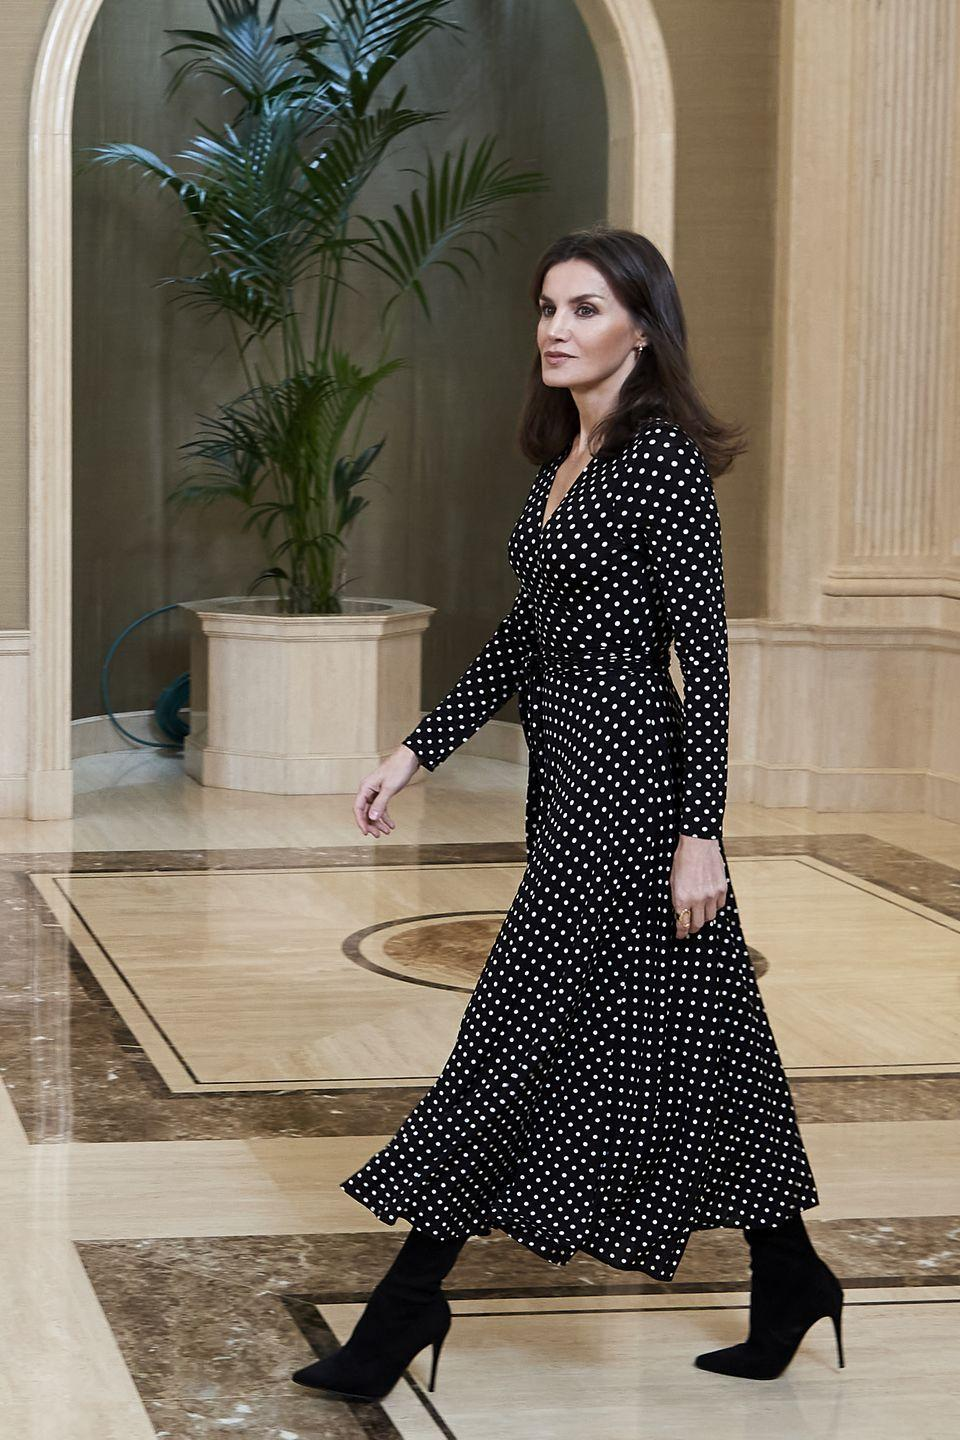 <p>The Queen looked elegant in a black and white polka dot dress and stiletto-heeled booties. </p>